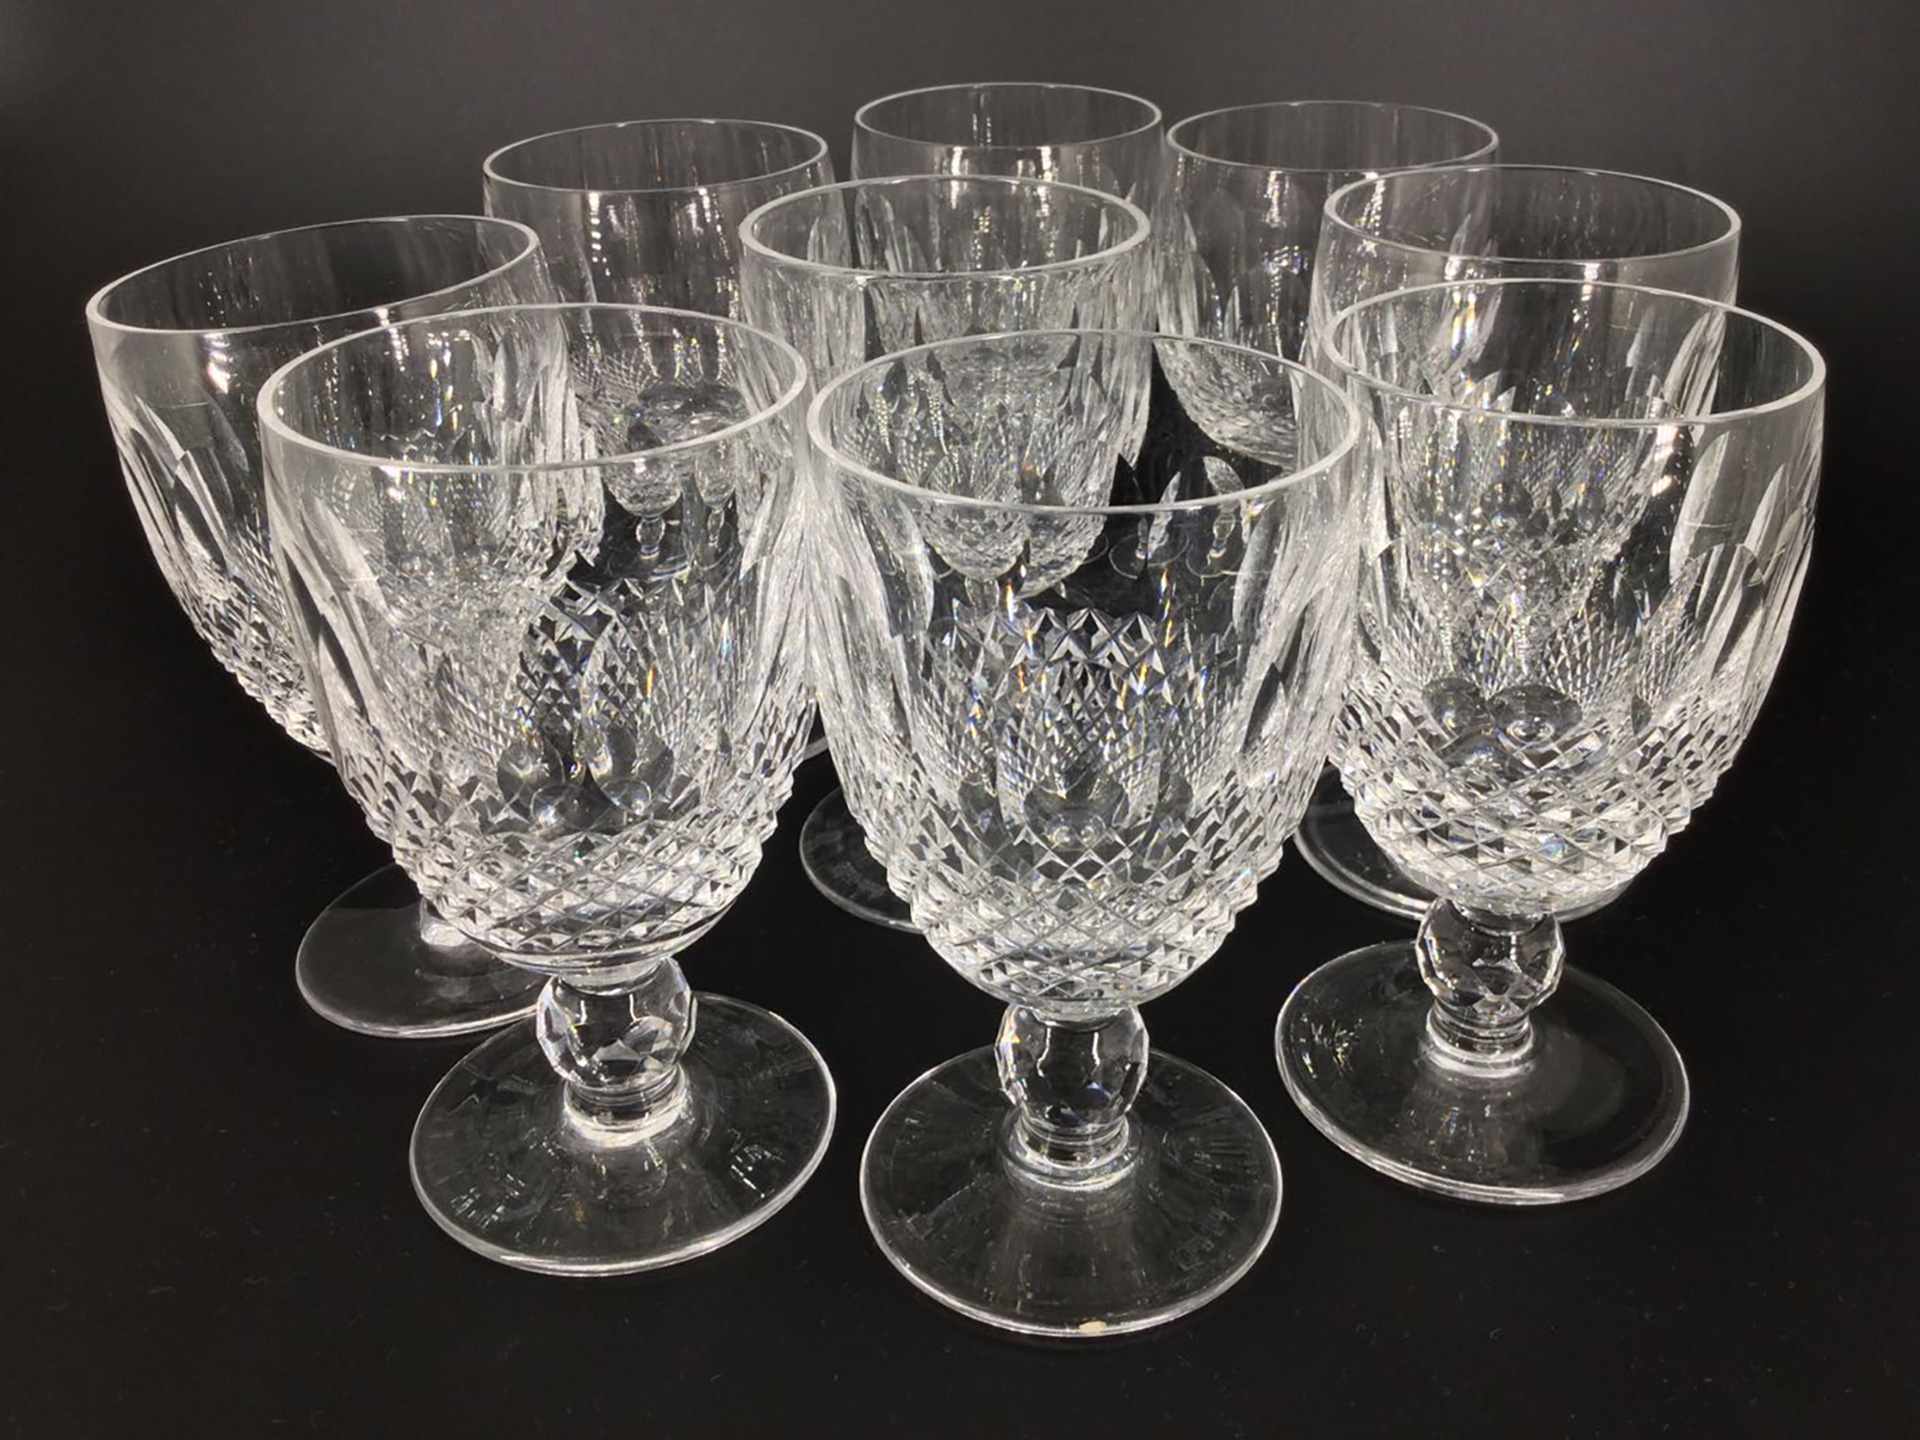 the-history-heritage-and-timeless-heirlooms-of-harry-p-archinal-16-waterford-crystal-sherry-glasses